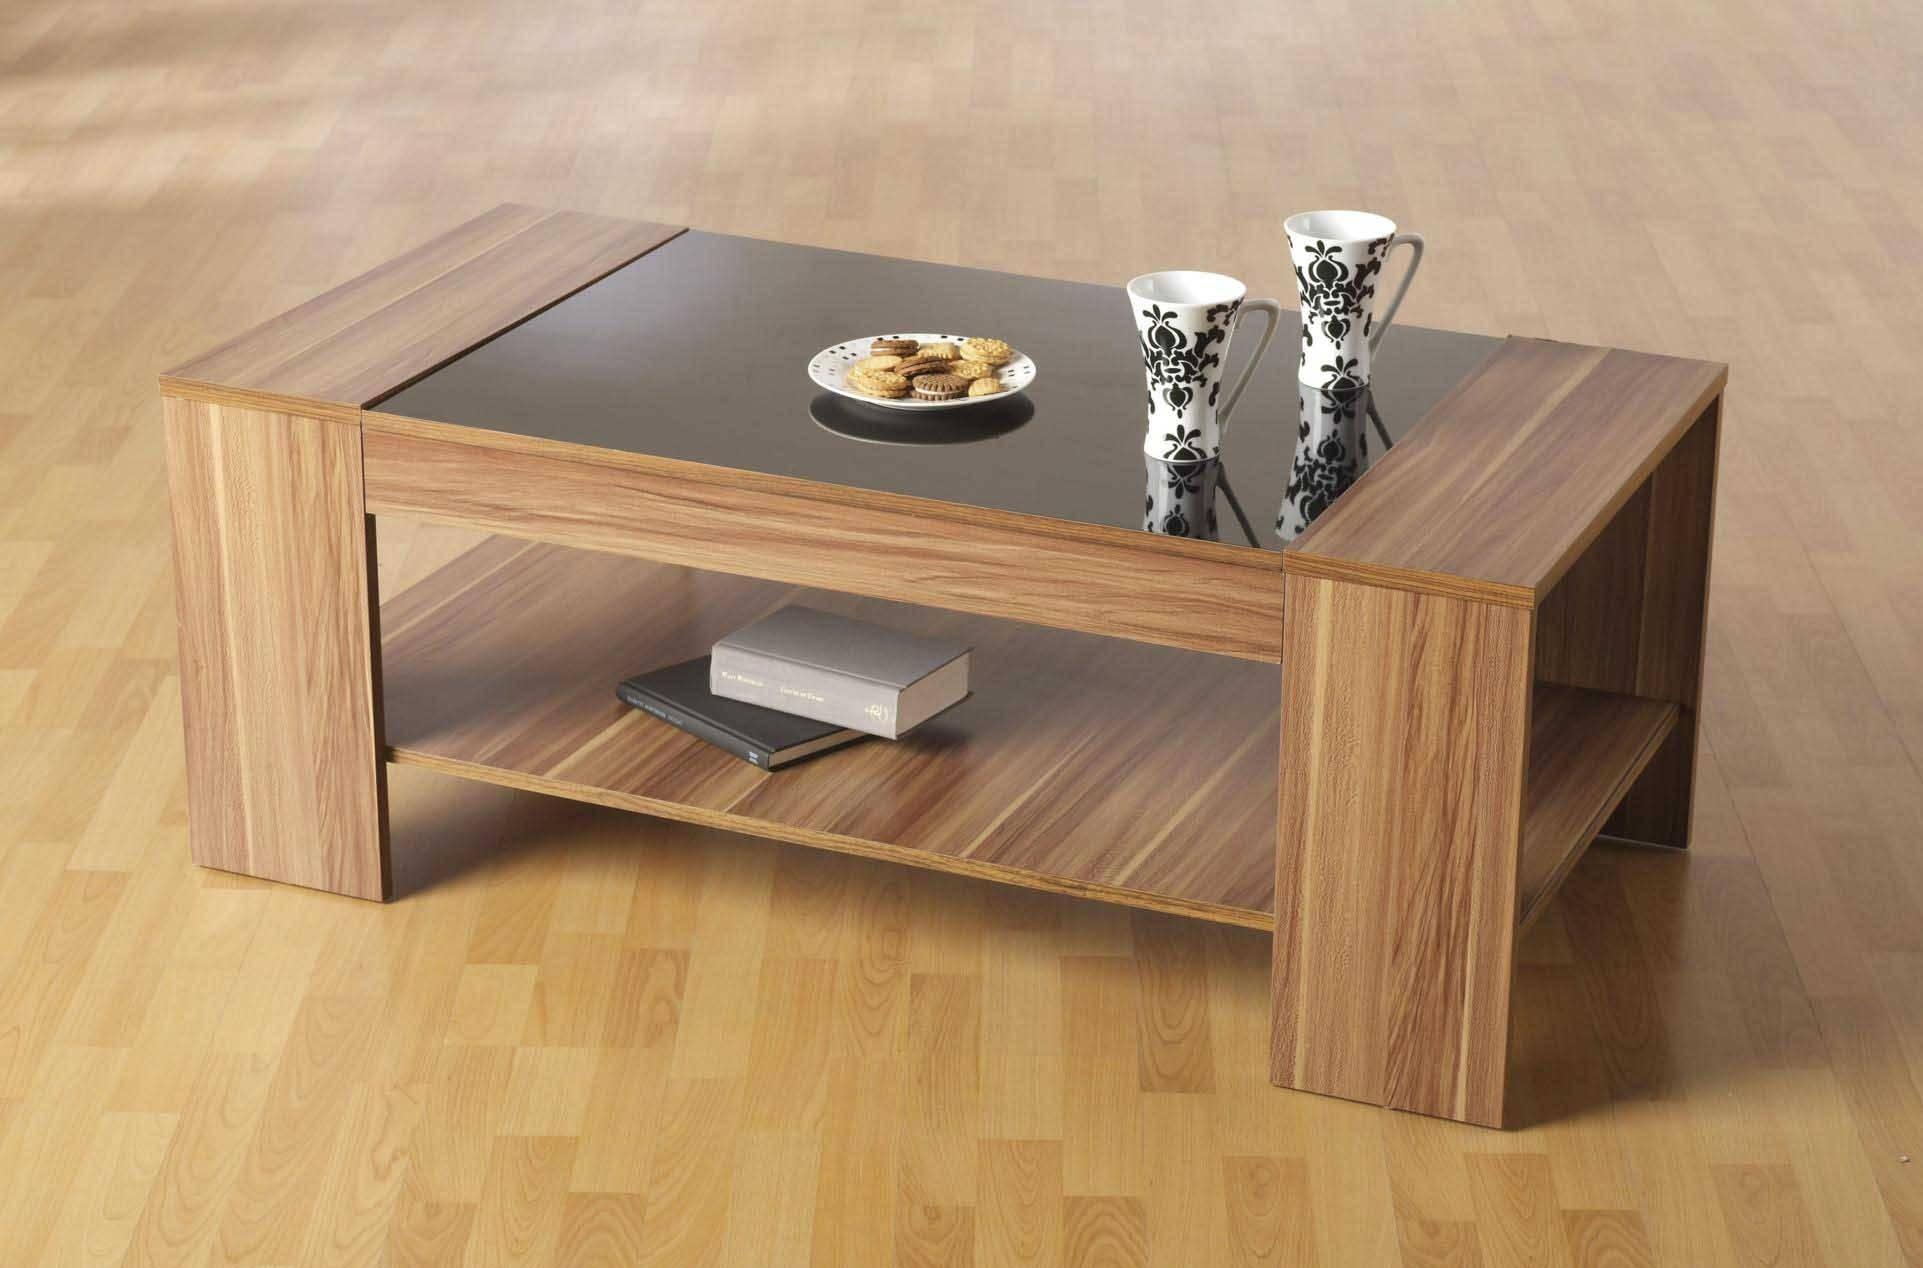 30 Best Collection of Hardwood Coffee Tables With Storage